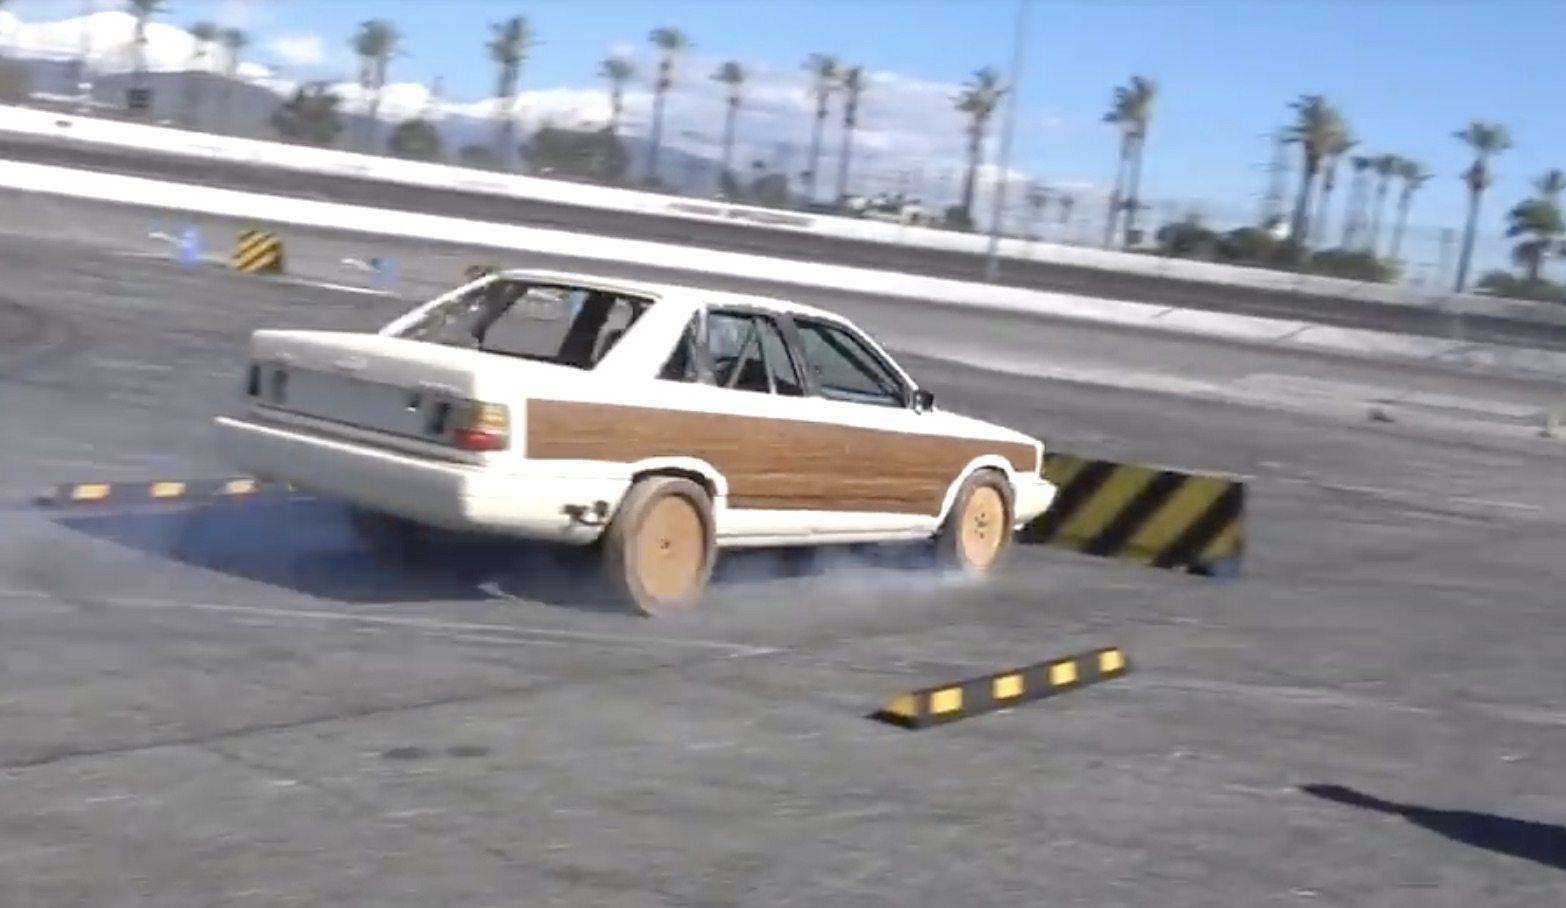 Wood Wheels, All Wheel Drive, And The Hoonigans…What Can Go Wrong Here?